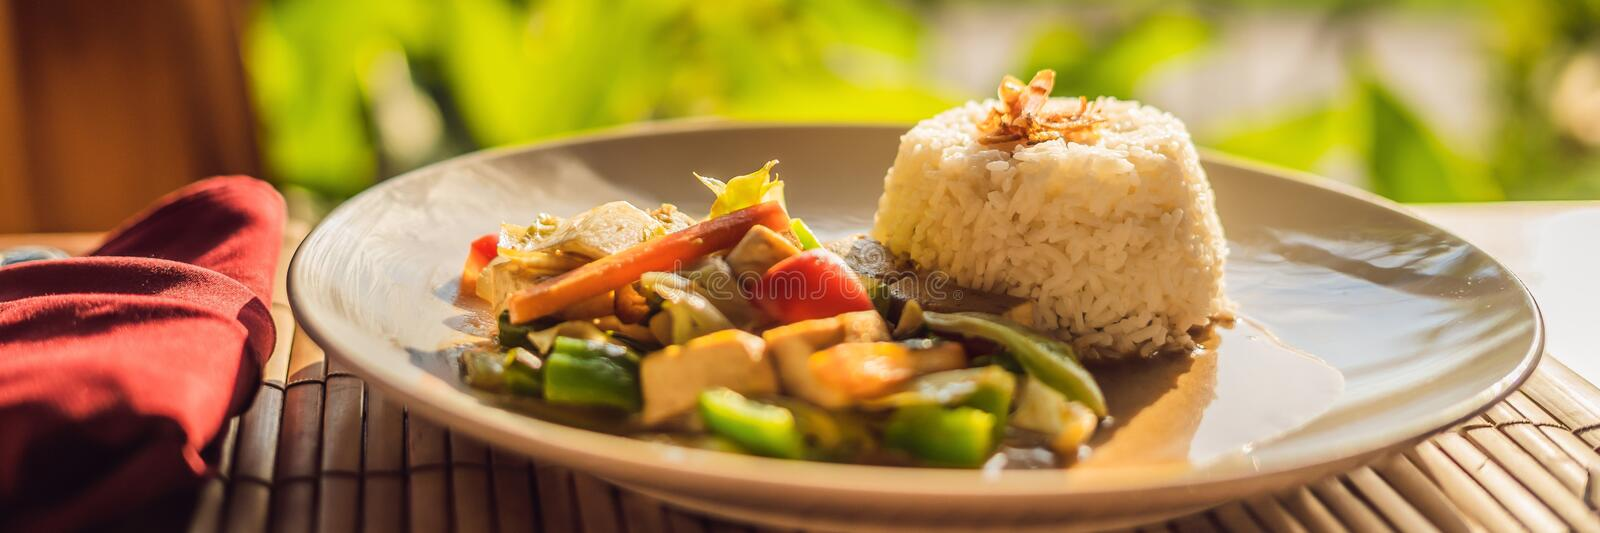 Traditional Balinese cuisine. Vegetable and tofu stir-fry with rice BANNER, long format. Traditional Balinese cuisine. Vegetable and tofu stir-fry with rice stock photo